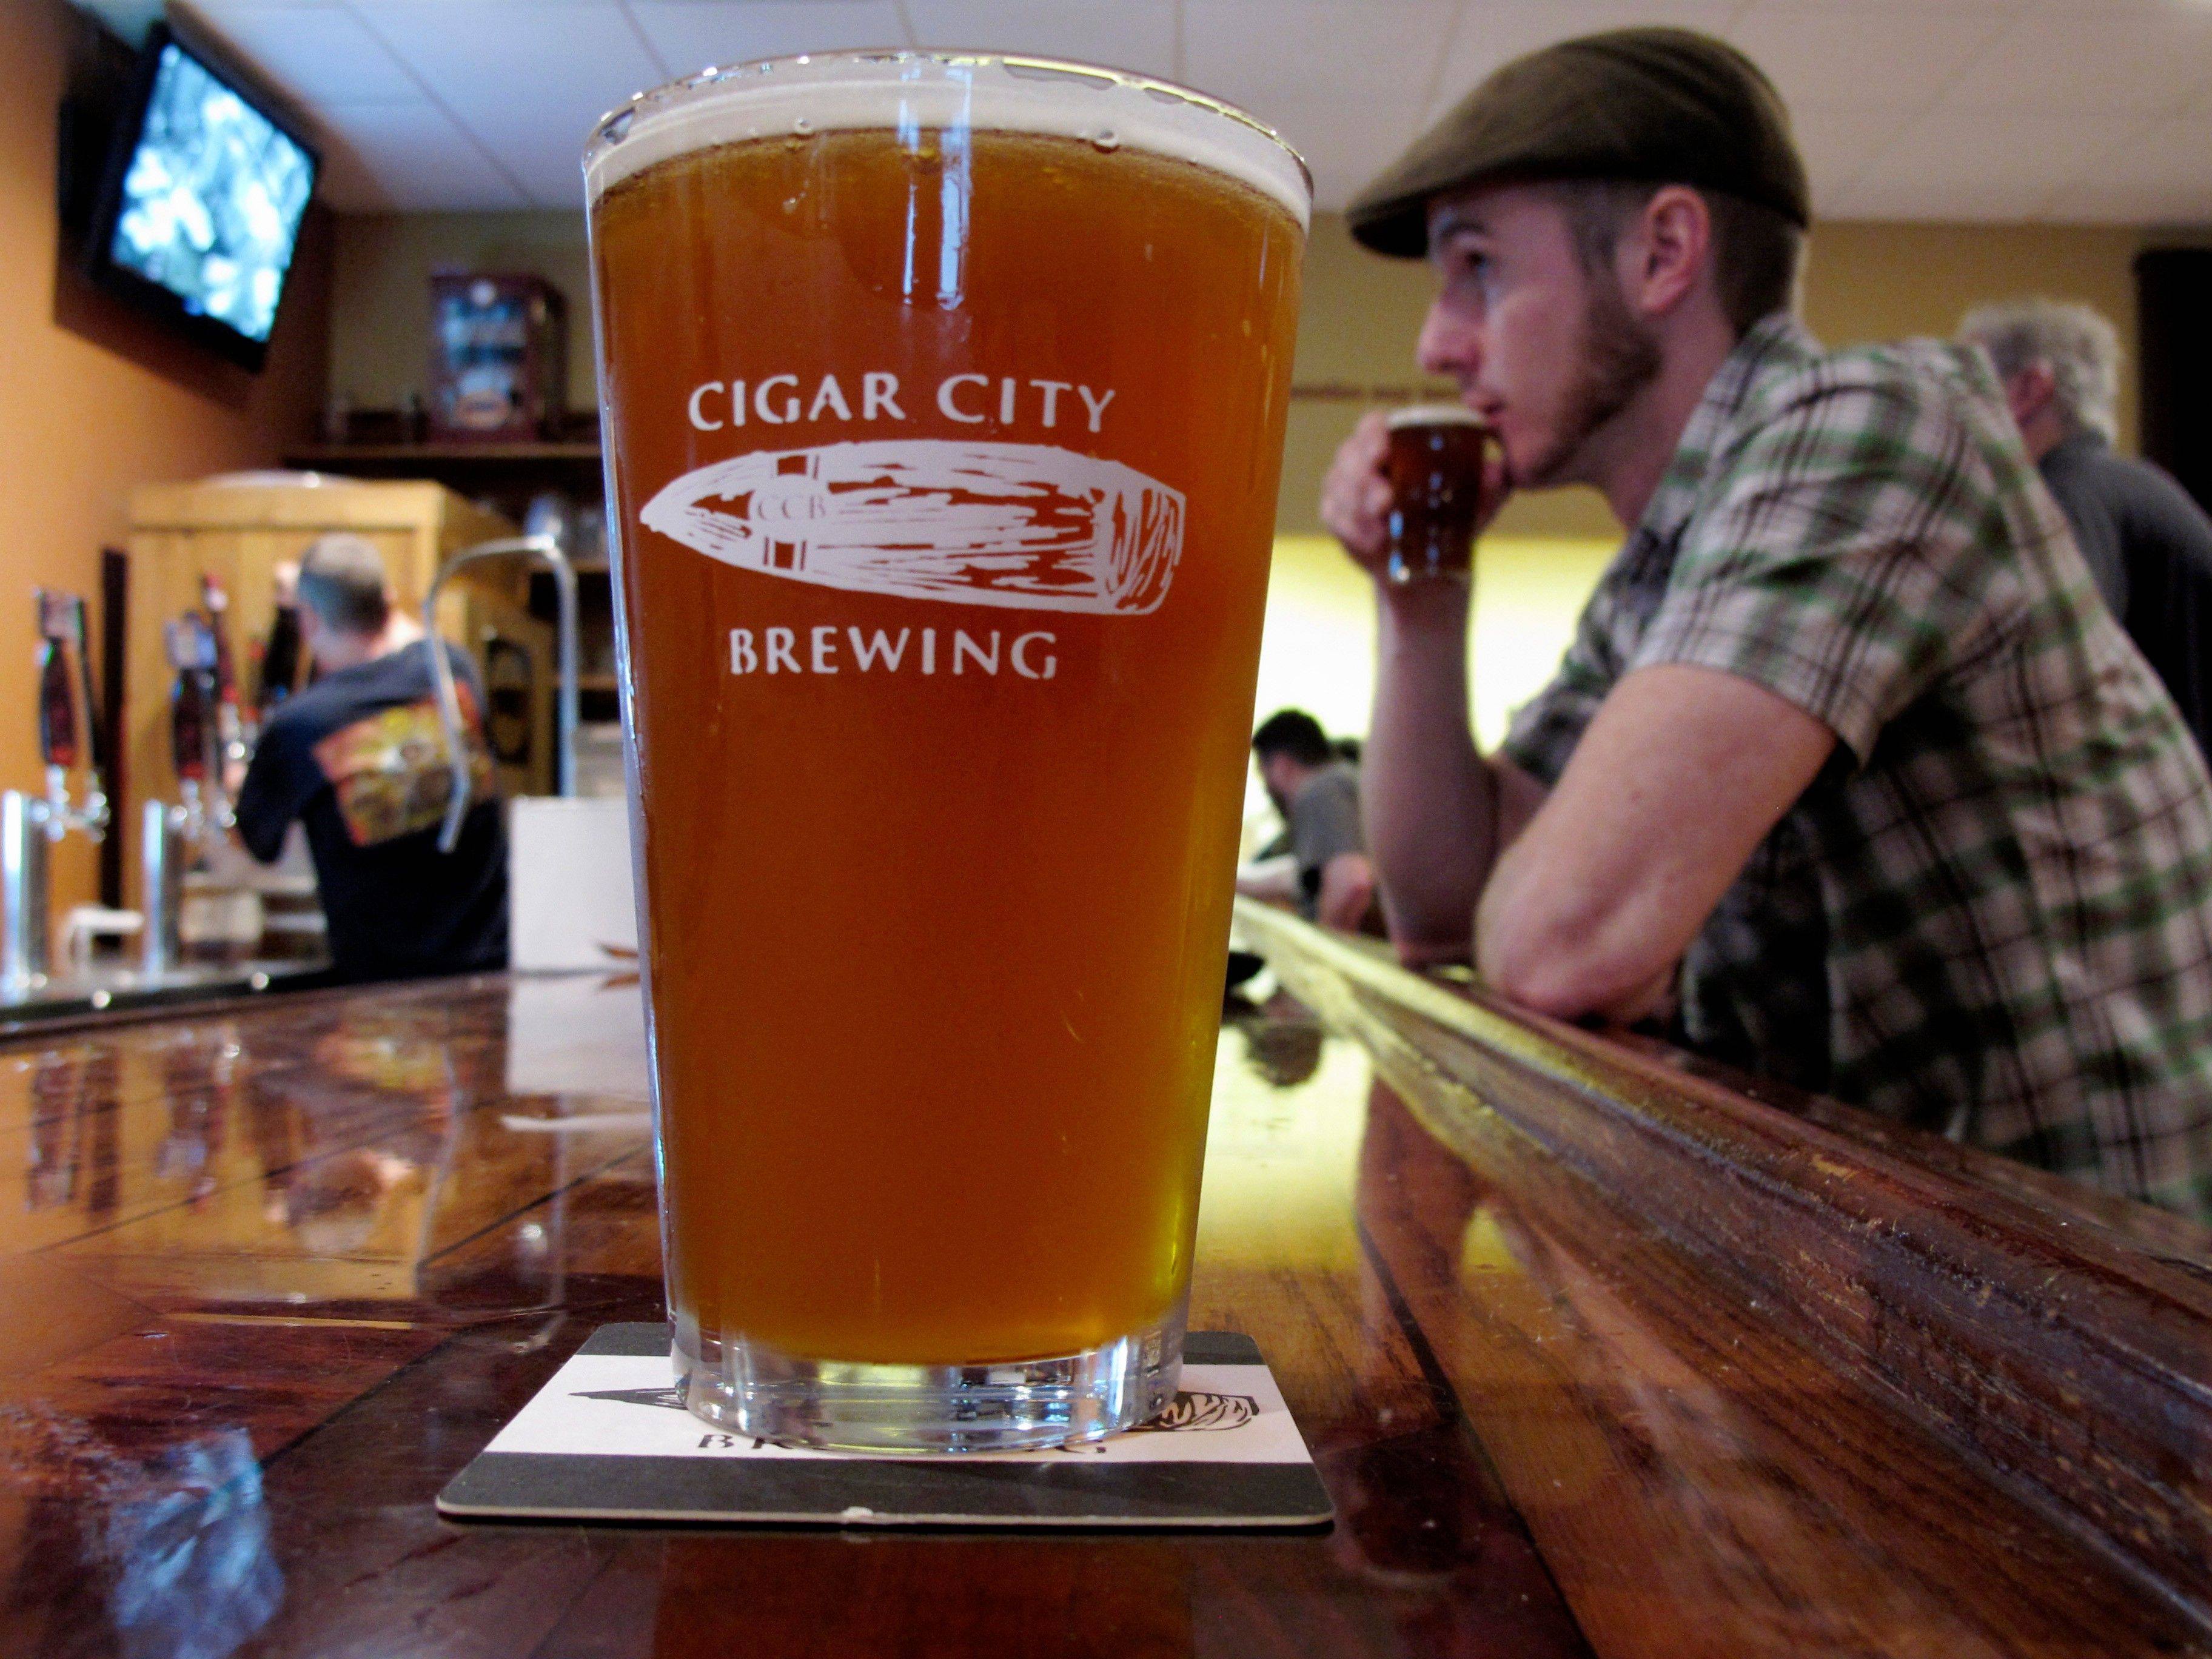 A pint of Cigar City beer is shown on the bar at the brewery's tasting room in Tampa, Fla. Cigar City uses ingredients such as Spanish cedar, guava, Cuban espresso and citrus woods to craft beers that also taste of Tampa's heritage.